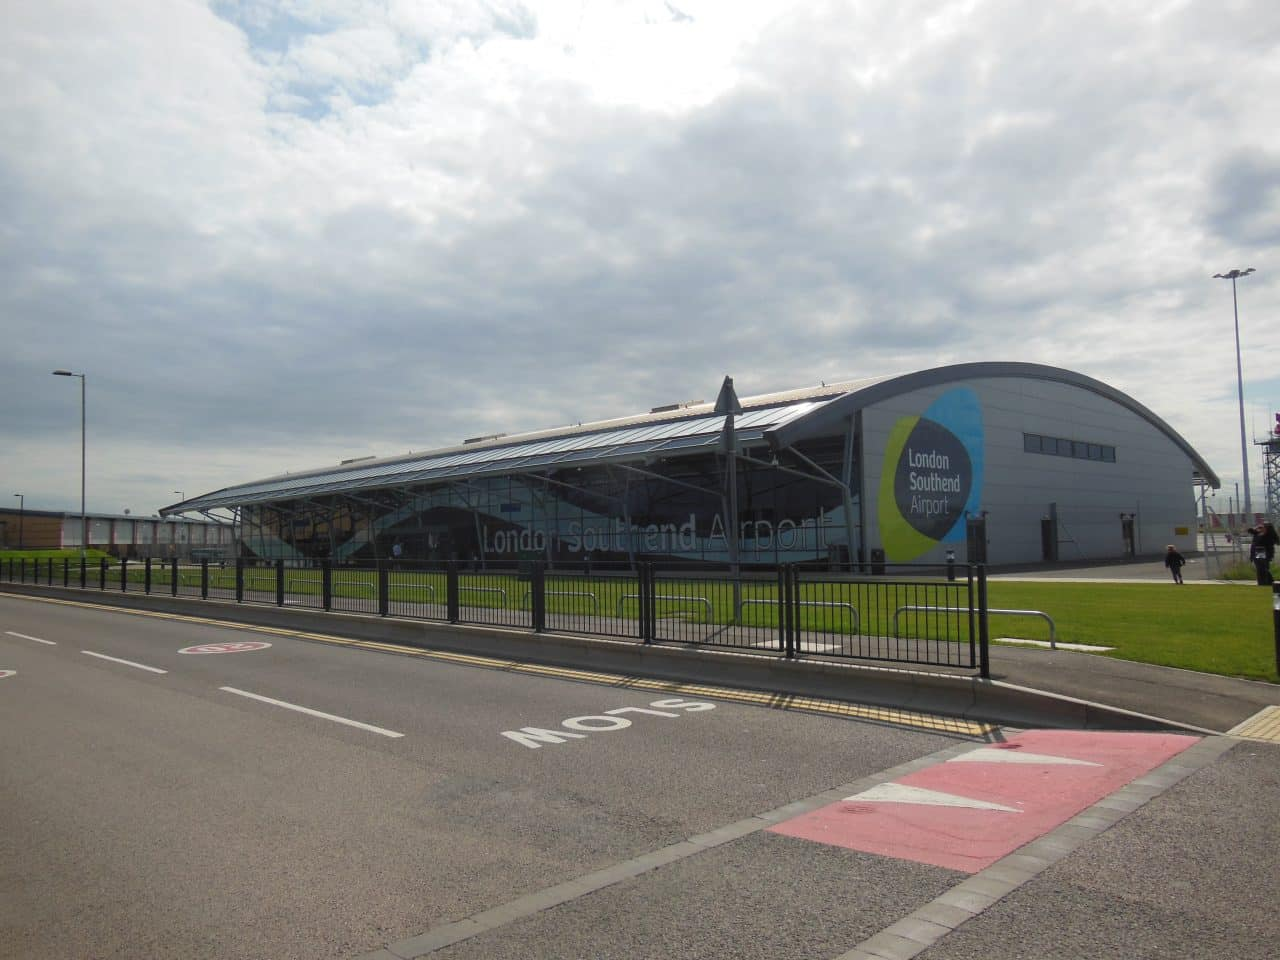 Southend Airport expanding due to unusually warm December weather